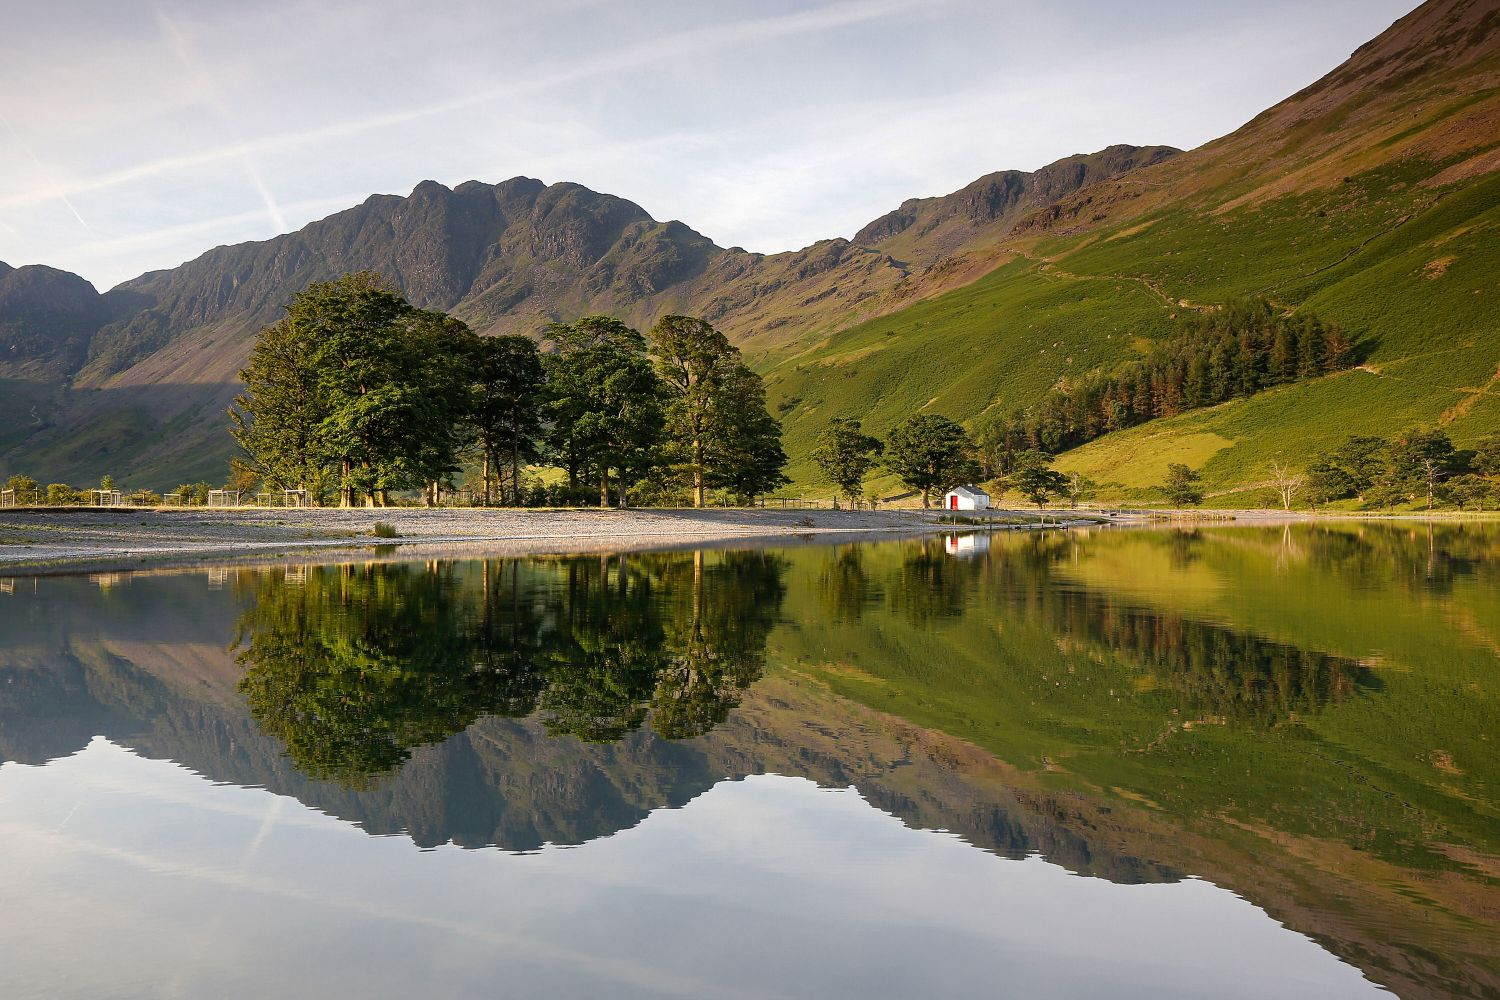 Summer reflections in Buttermere